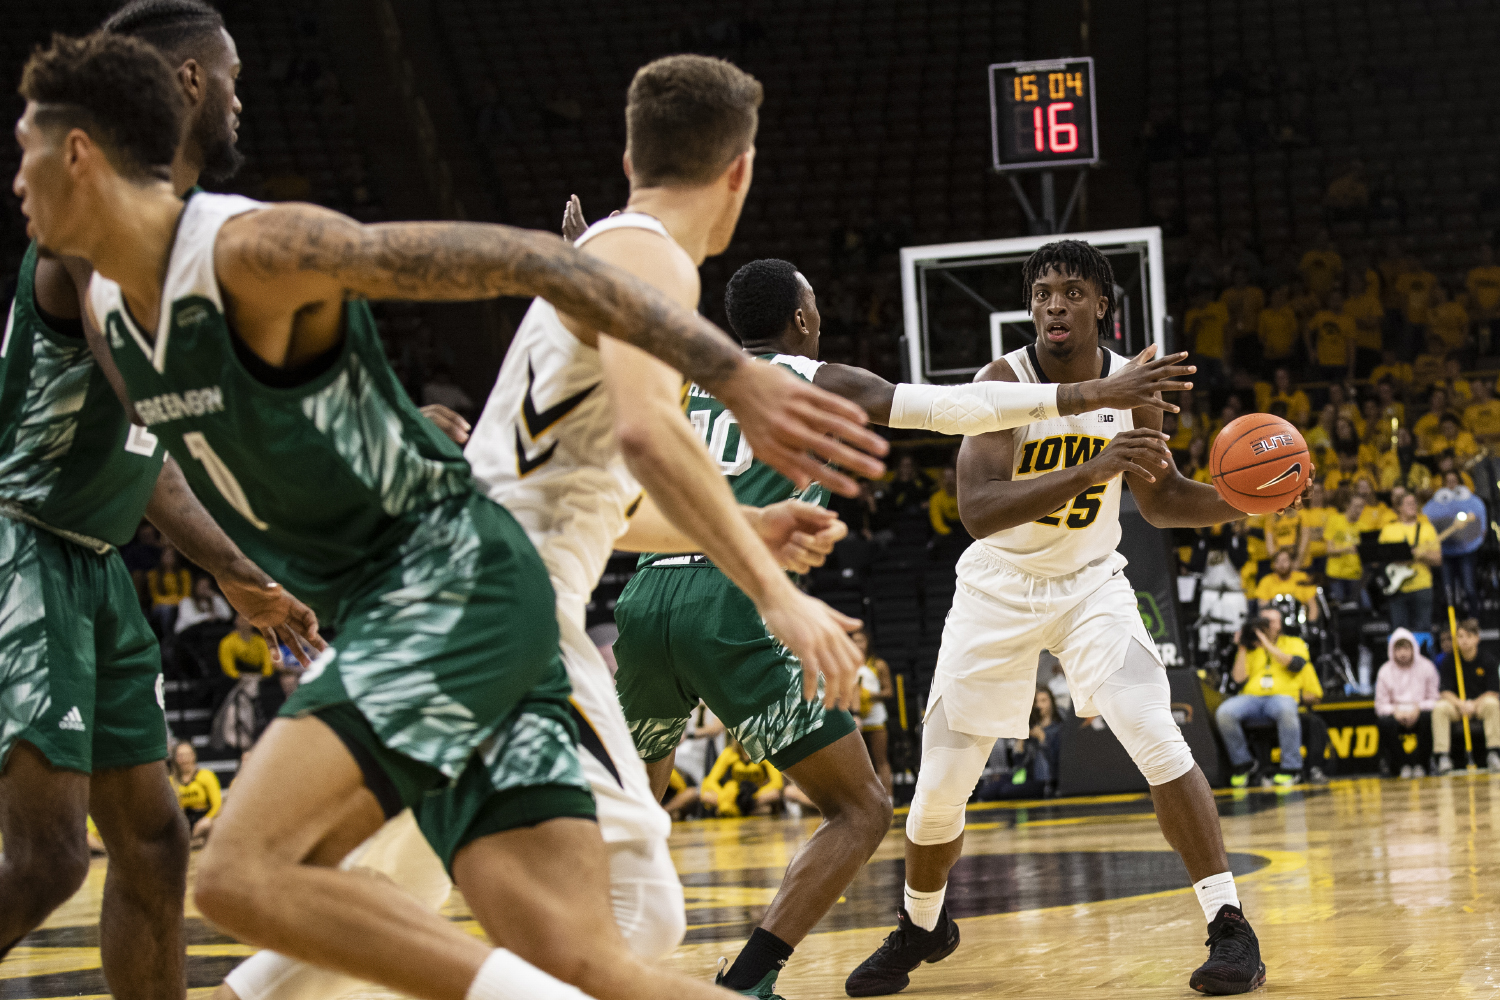 Iowa%E2%80%99s+Tyler+Cook+controls+the+offense+at+the+middle+of+the+second+half+during+the+Iowa+vs.+Green+Bay+basketball+game.+The+Hawkeyes+defeated+the+Phoenix+93-83+at+Carver-Hawkeye+Arena+on+Sunday%2C+Nov.+11%2C+2018.+